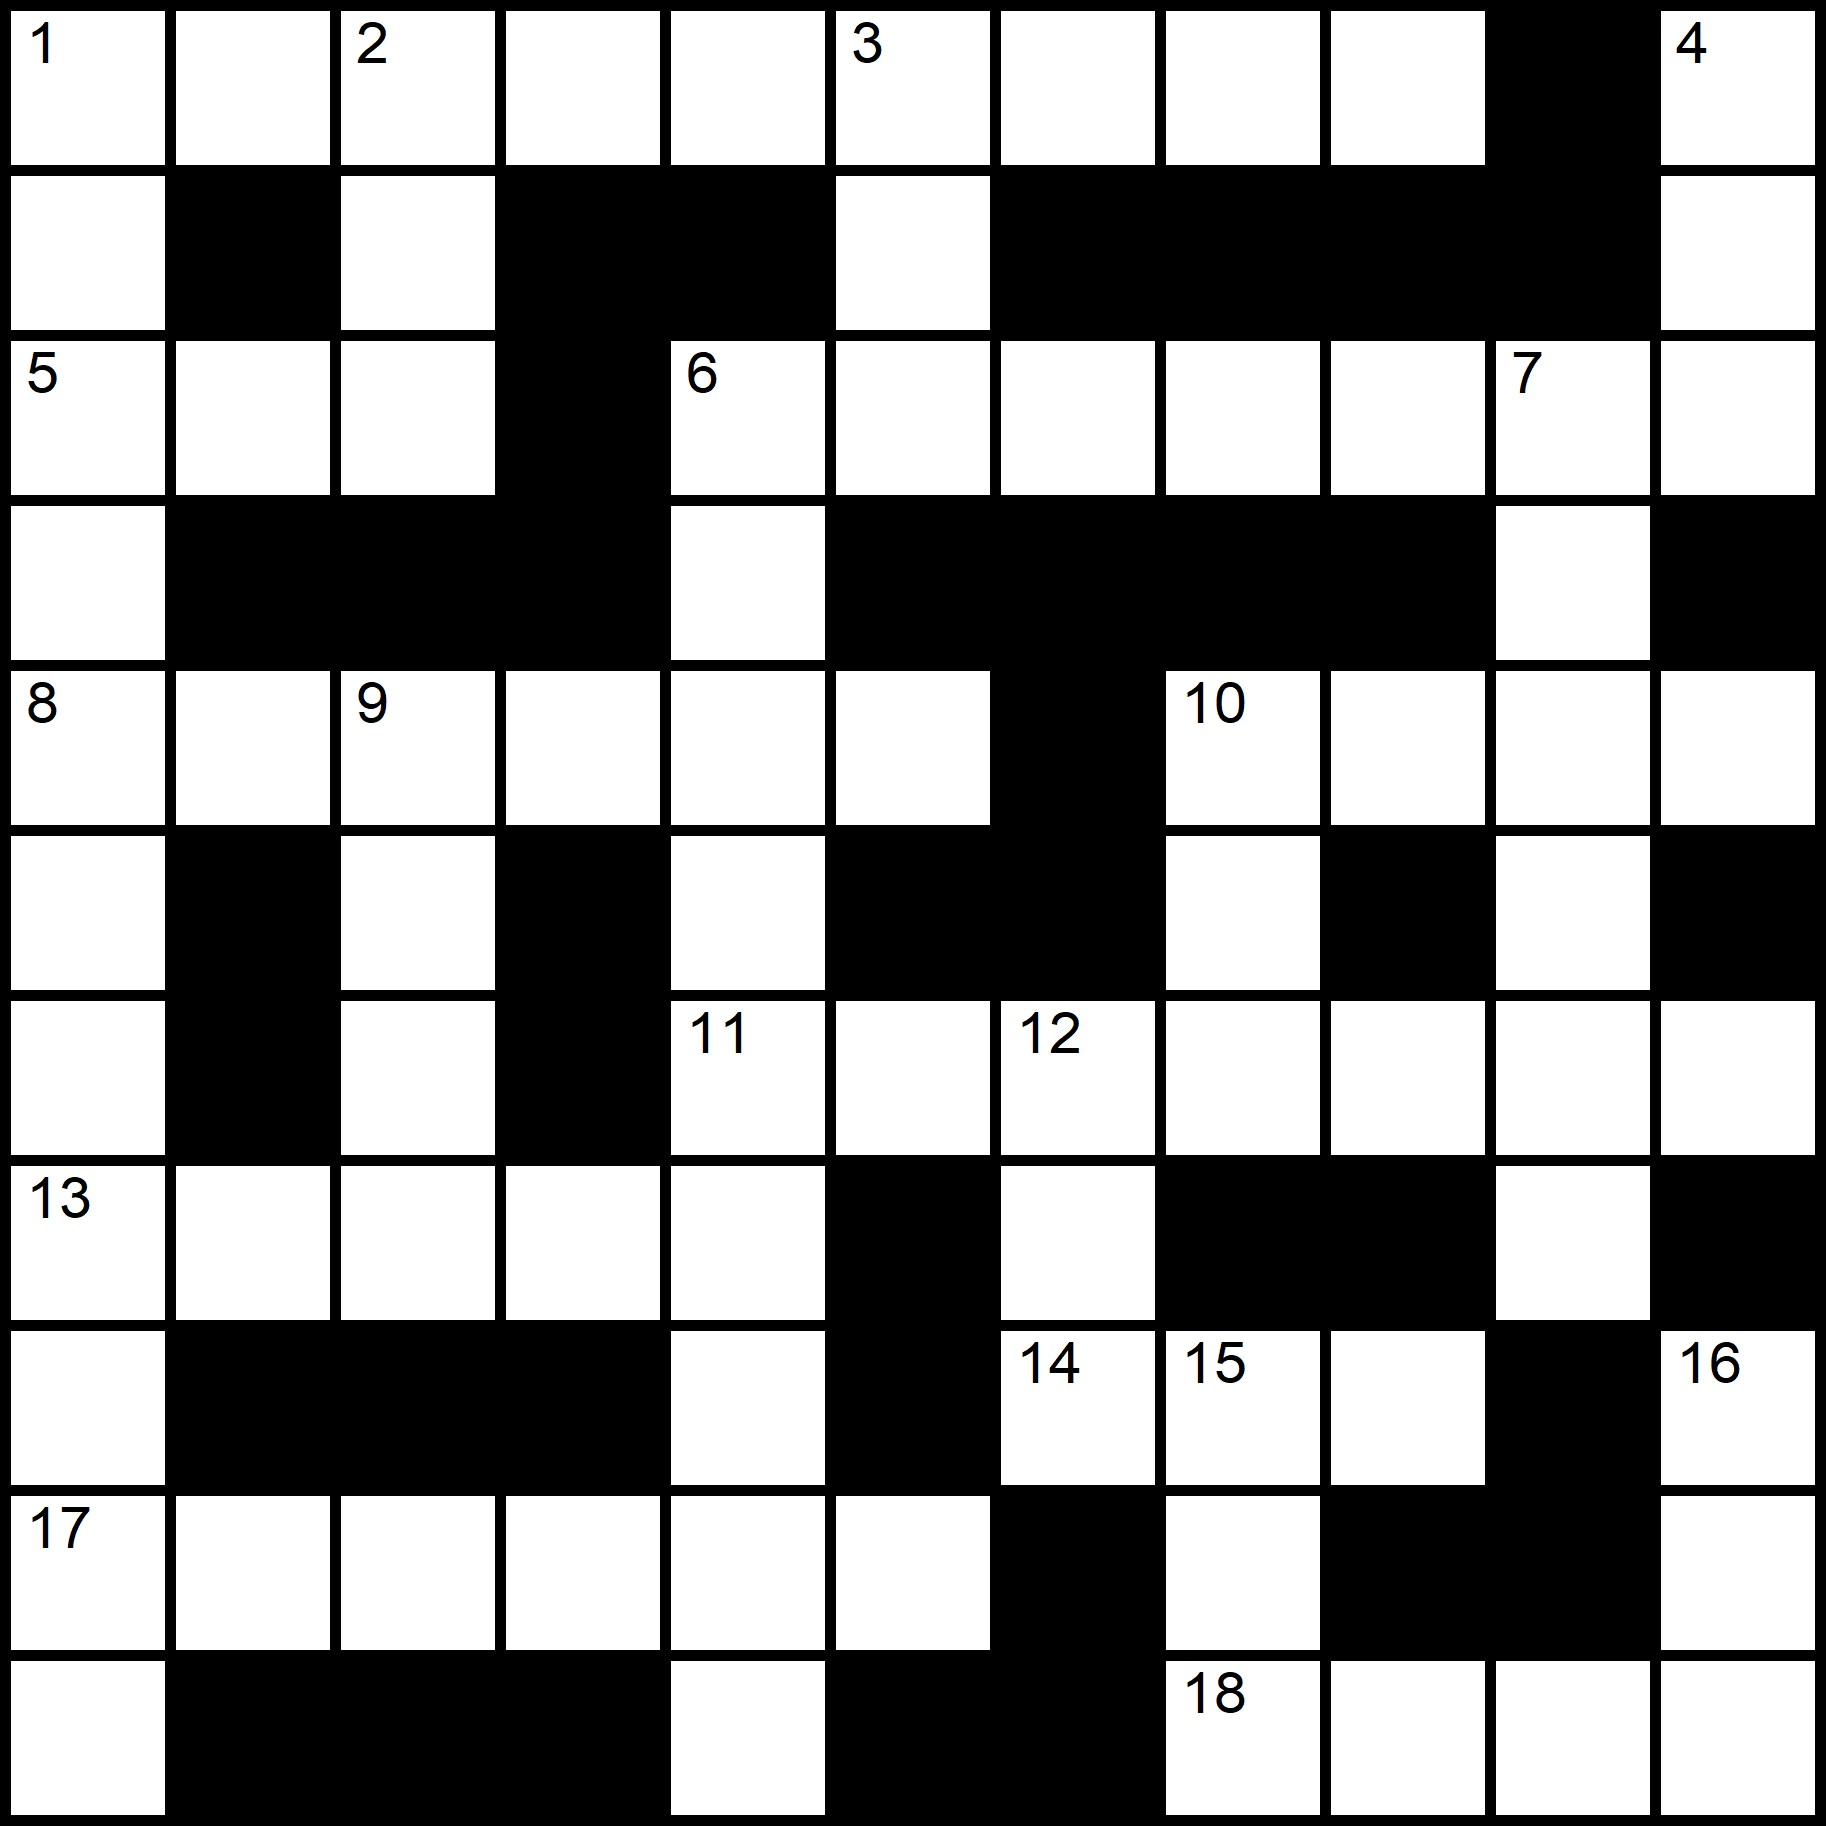 ESL Crosswords - Placidus Flora - Crossword number twelve